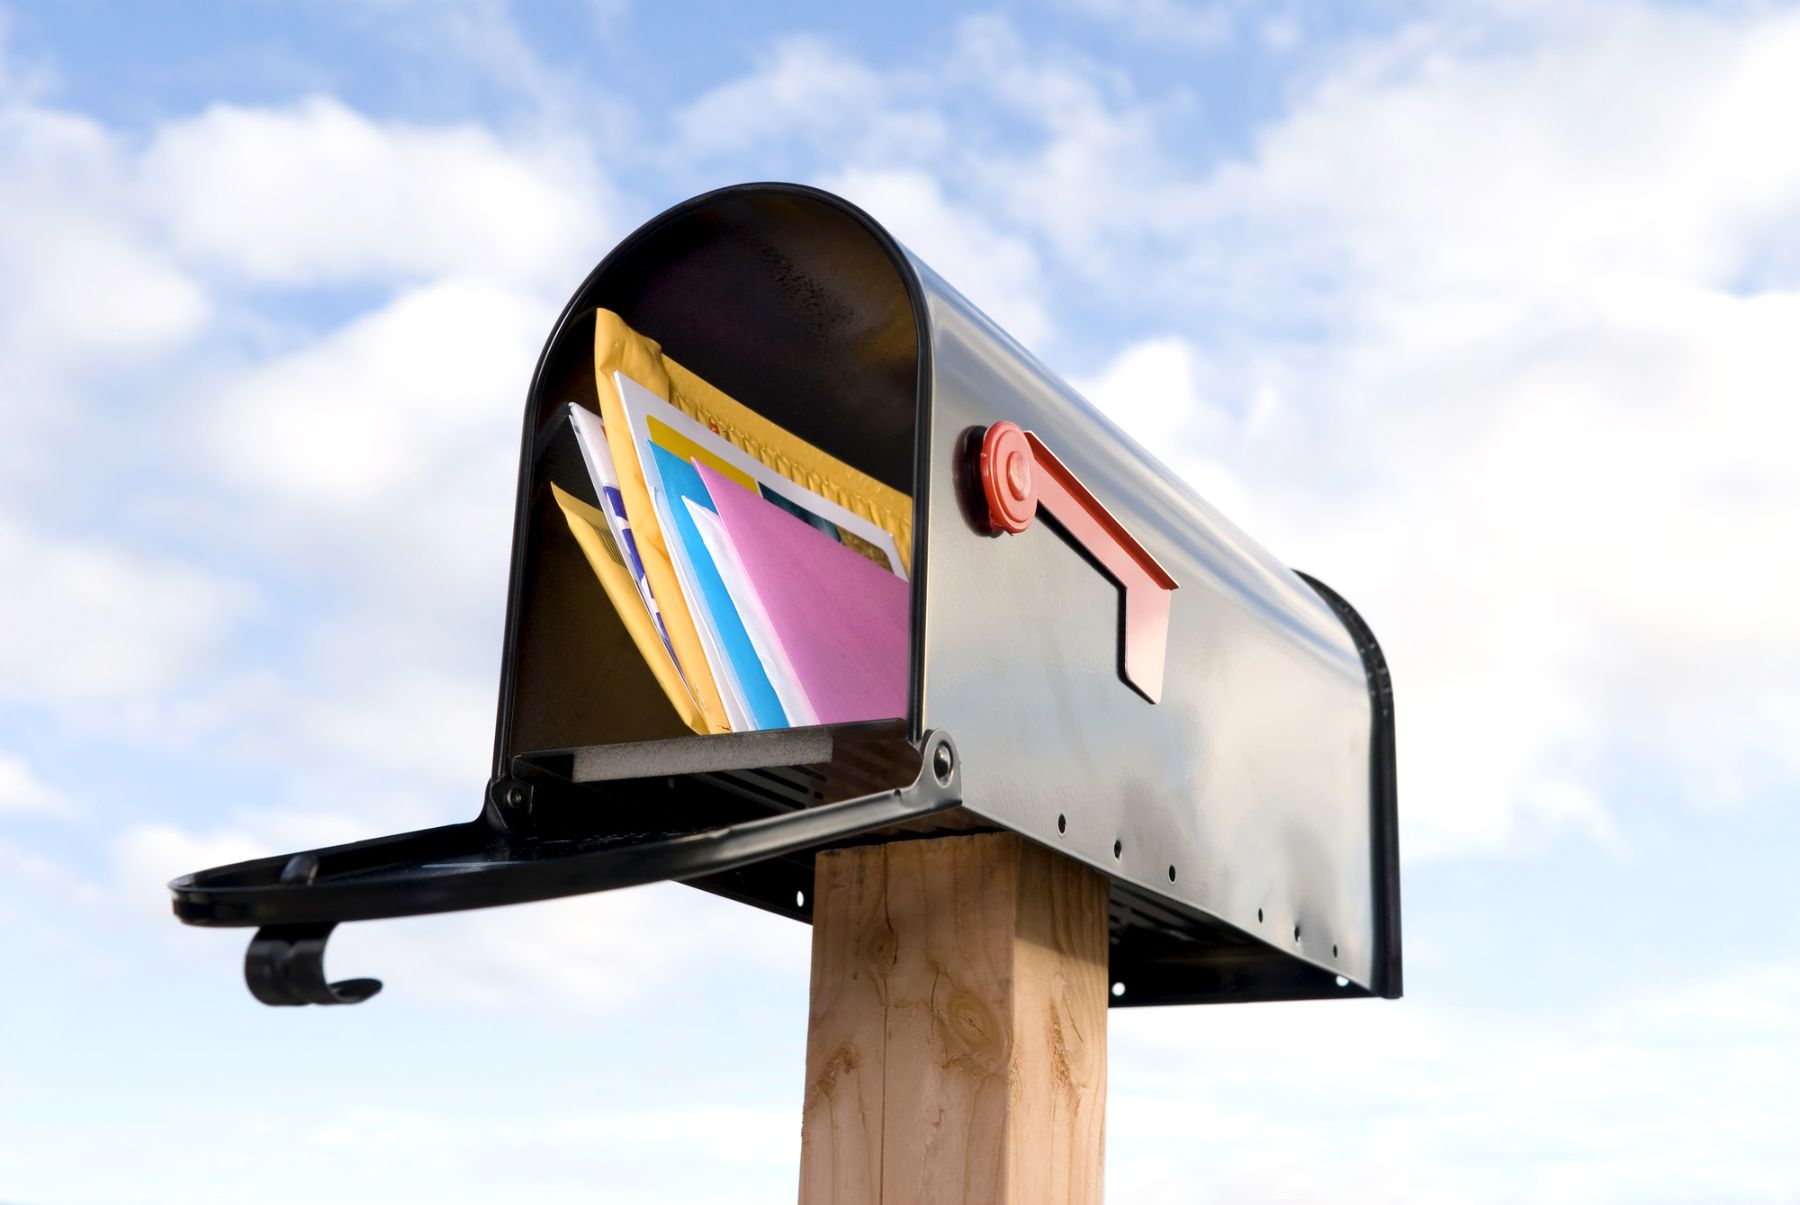 Cards in a mailbox